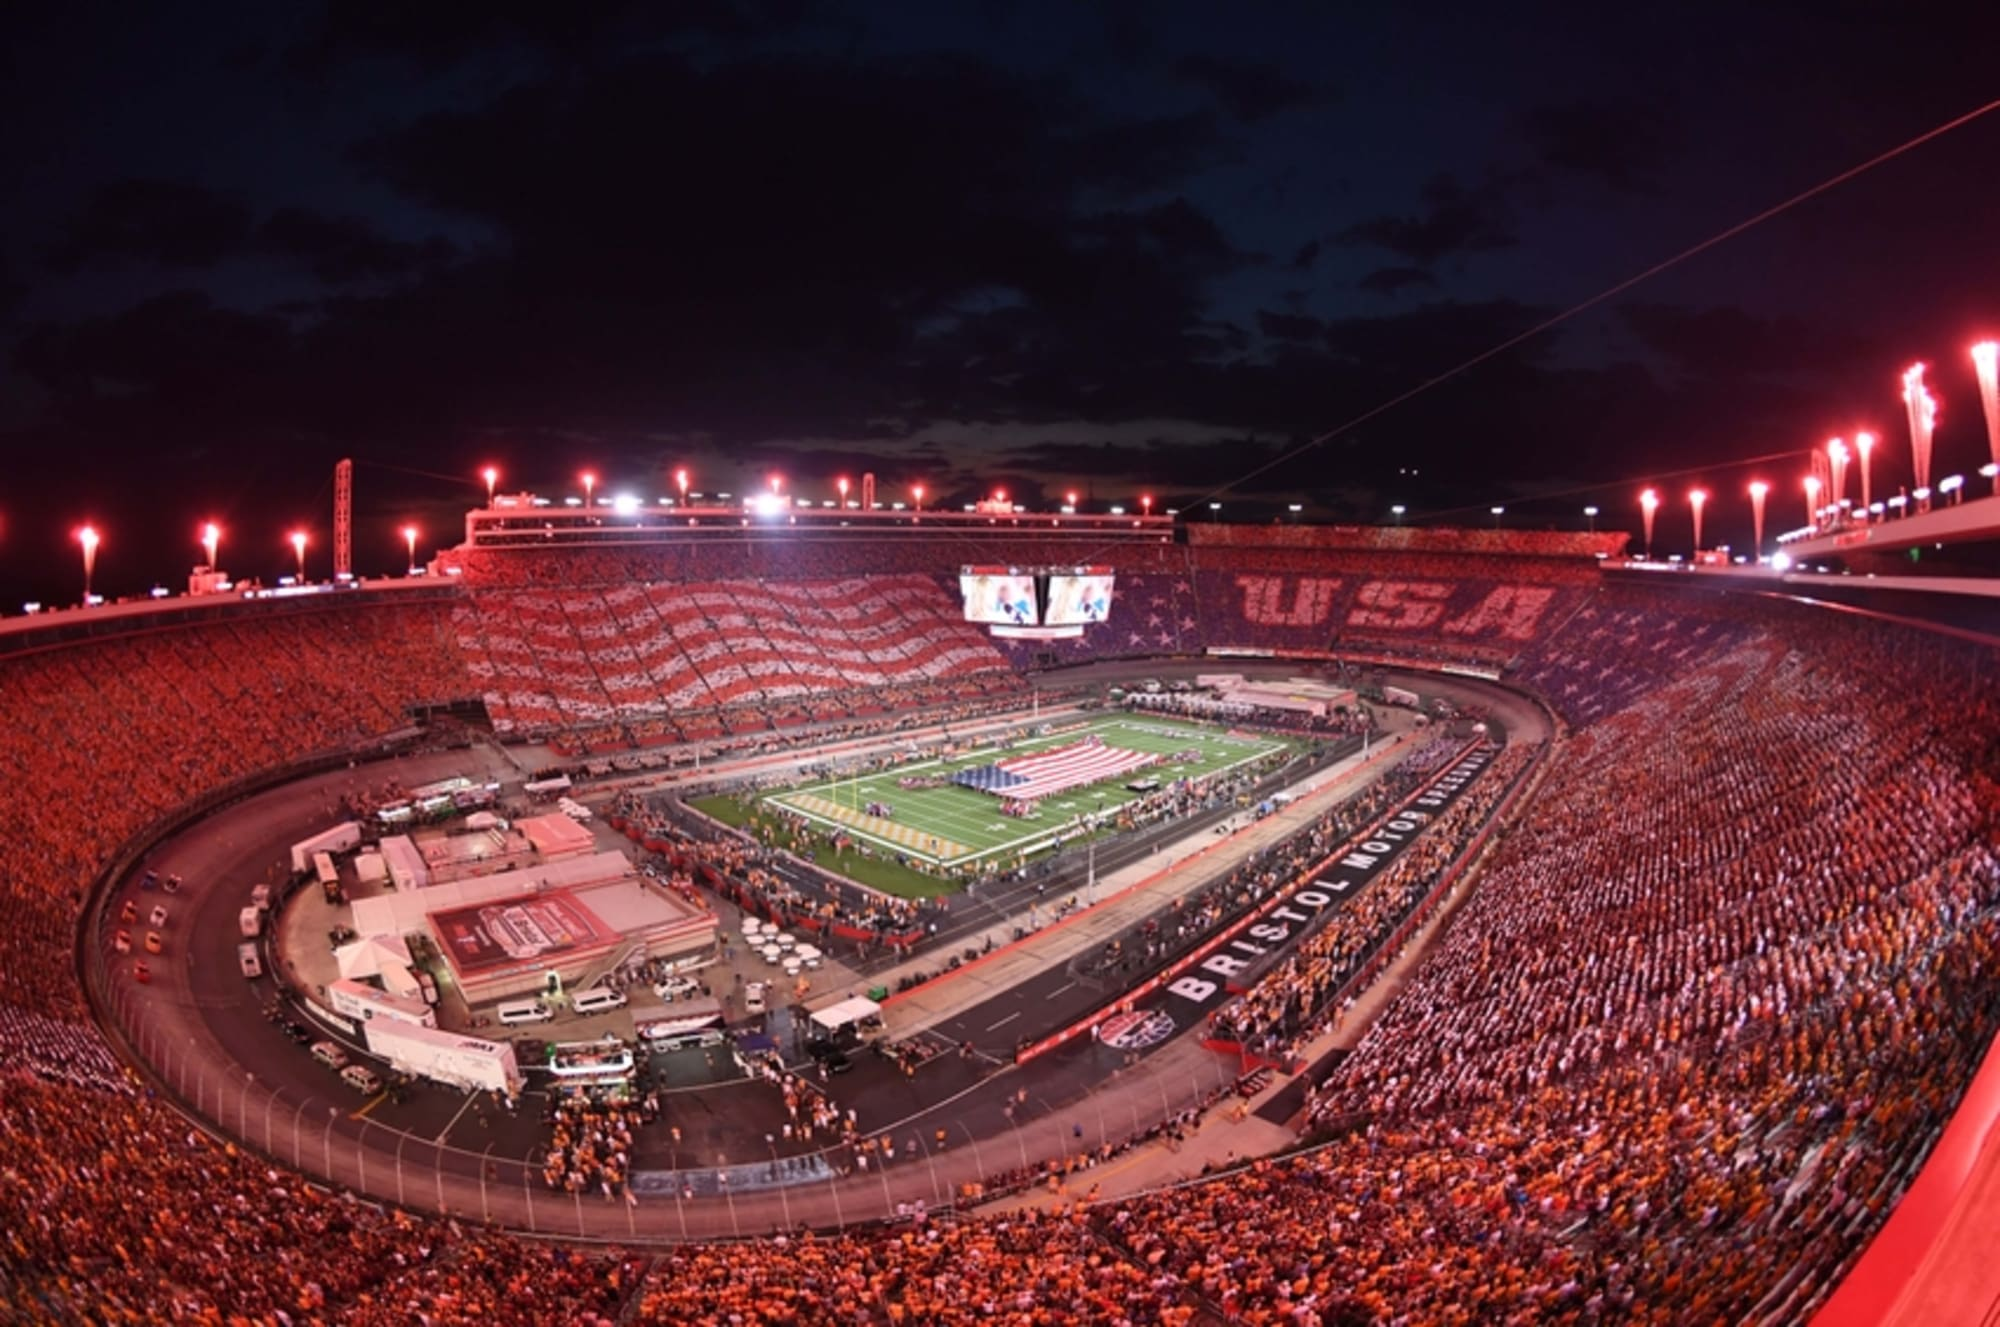 Virginia Tech Vs Tennessee How Many People Attended Game At Bristol